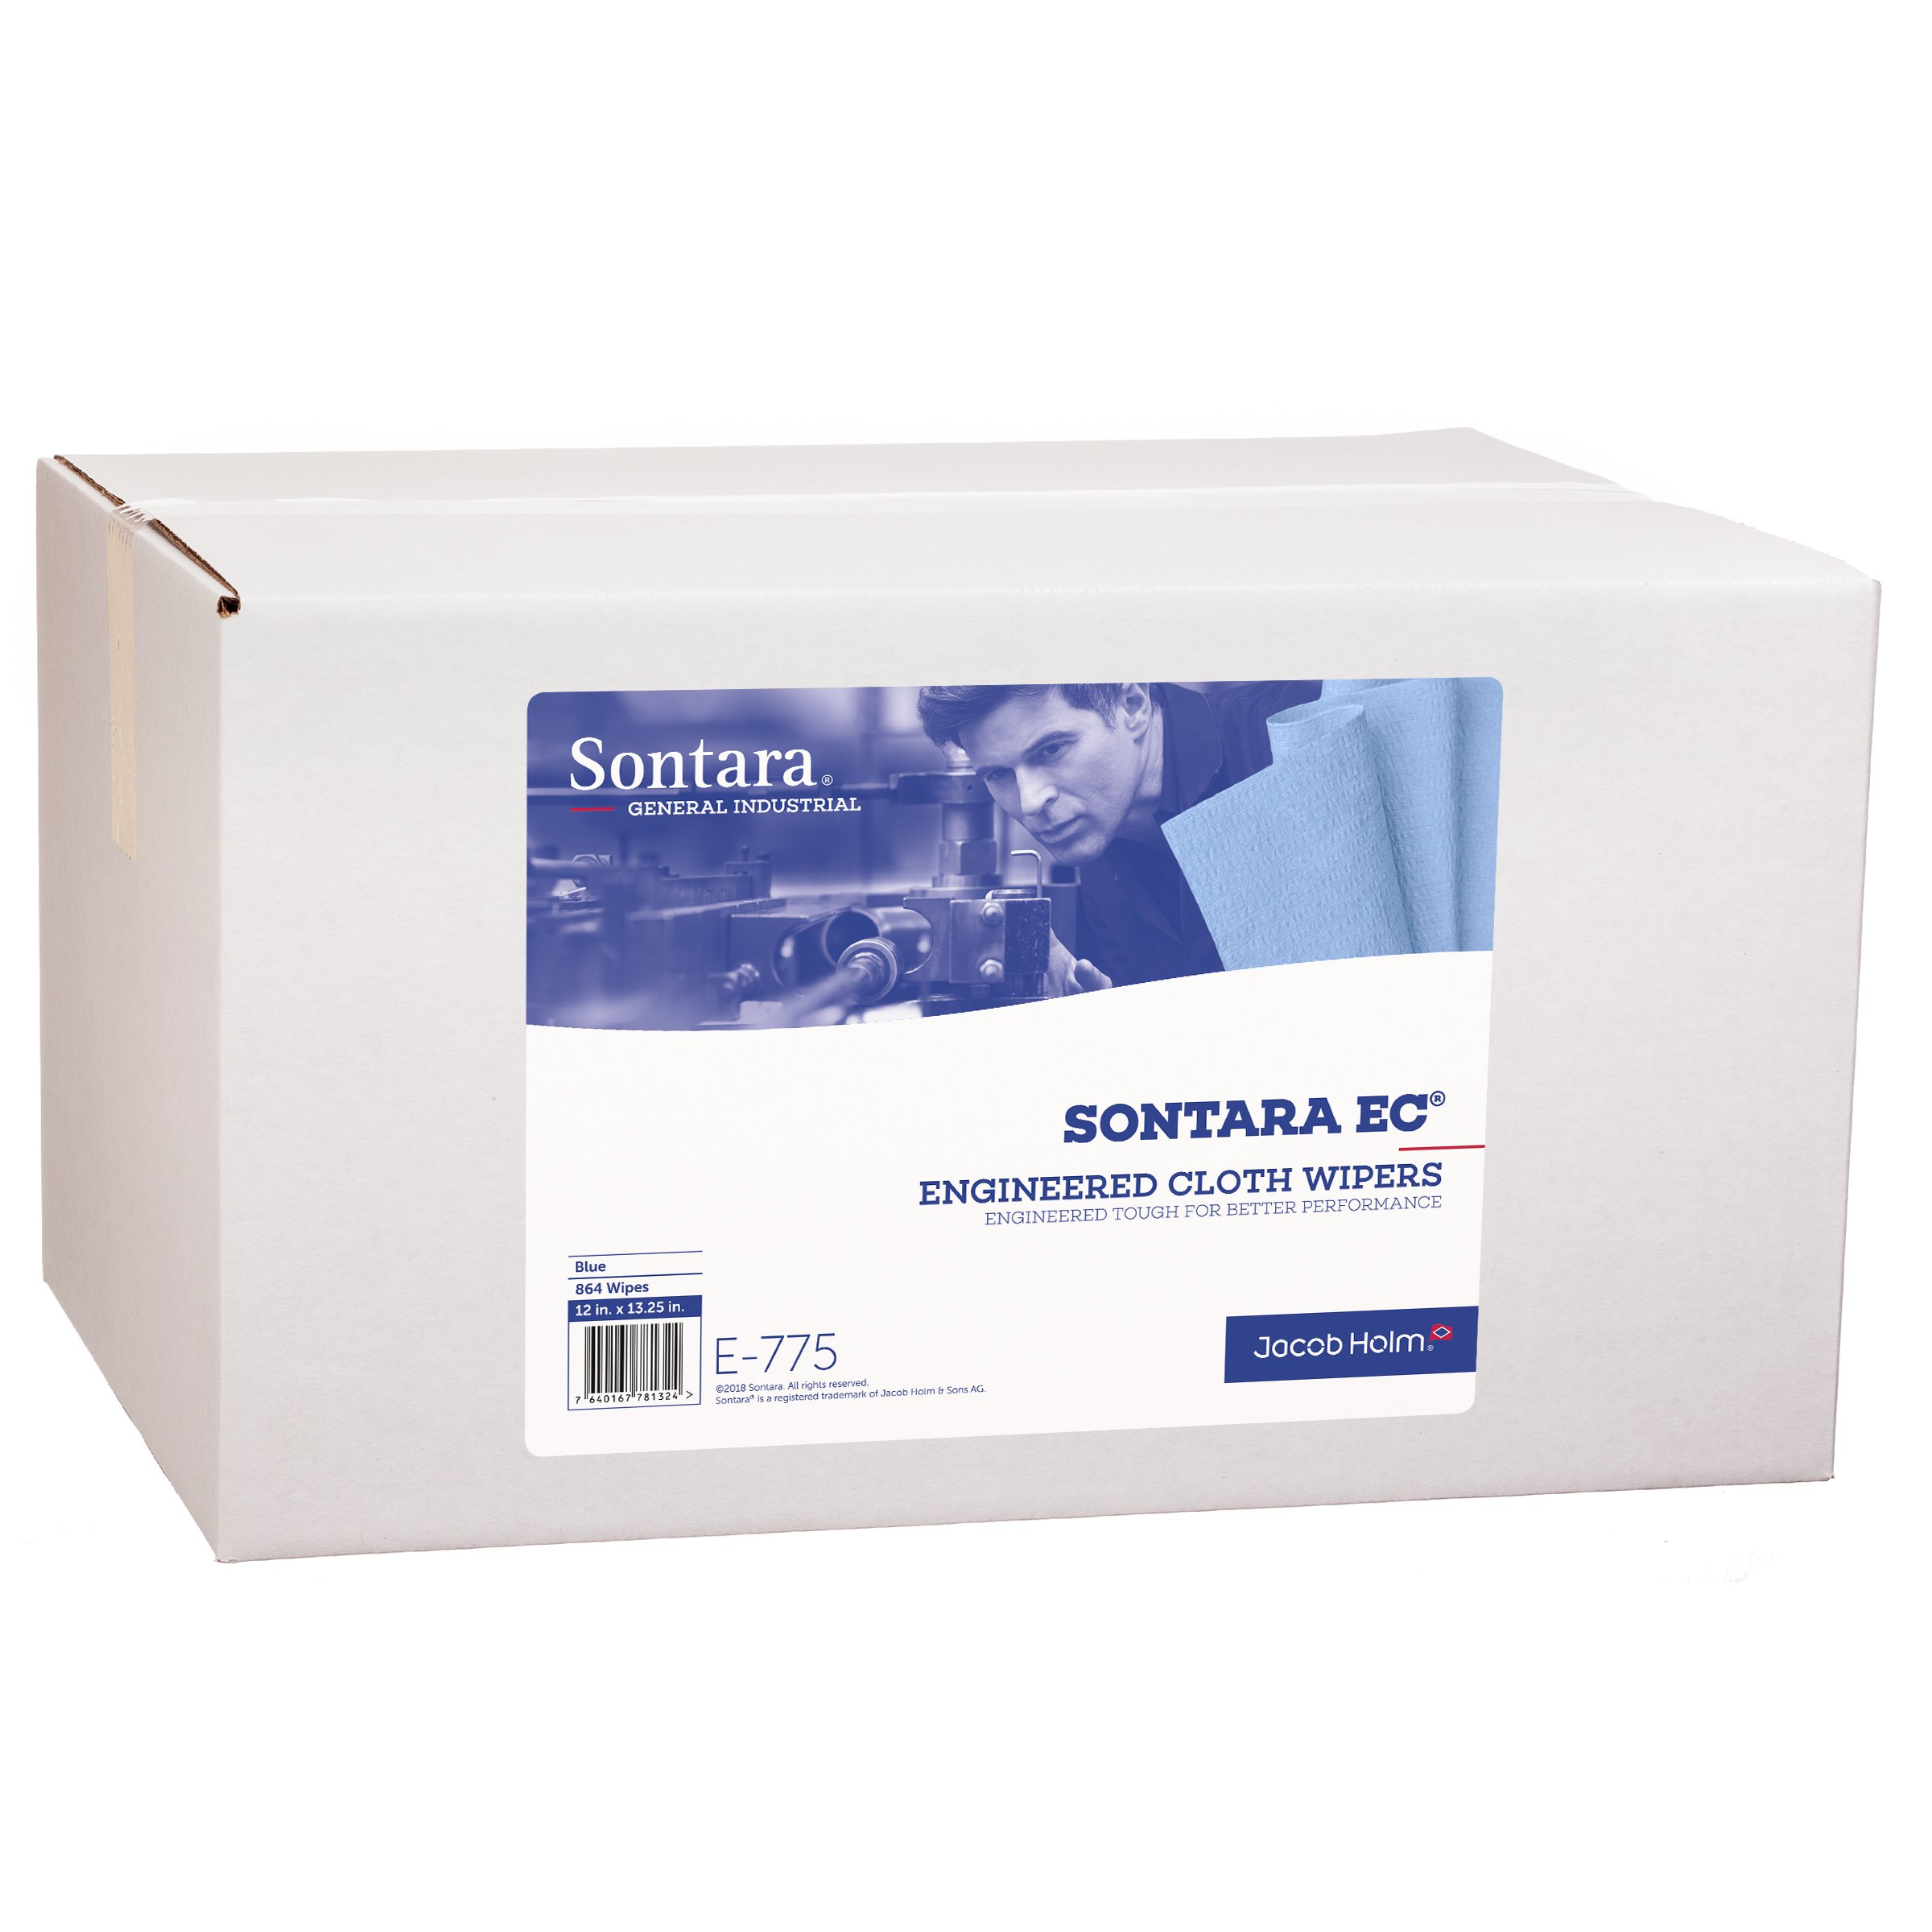 Sontara Engineered Cloth Wipers, E775, Blue, 12'' x 13.25'', (Total of 864 Wipes), (Case of 18 Packs, 48 Wipes Per Pack) by Sontara (Image #1)